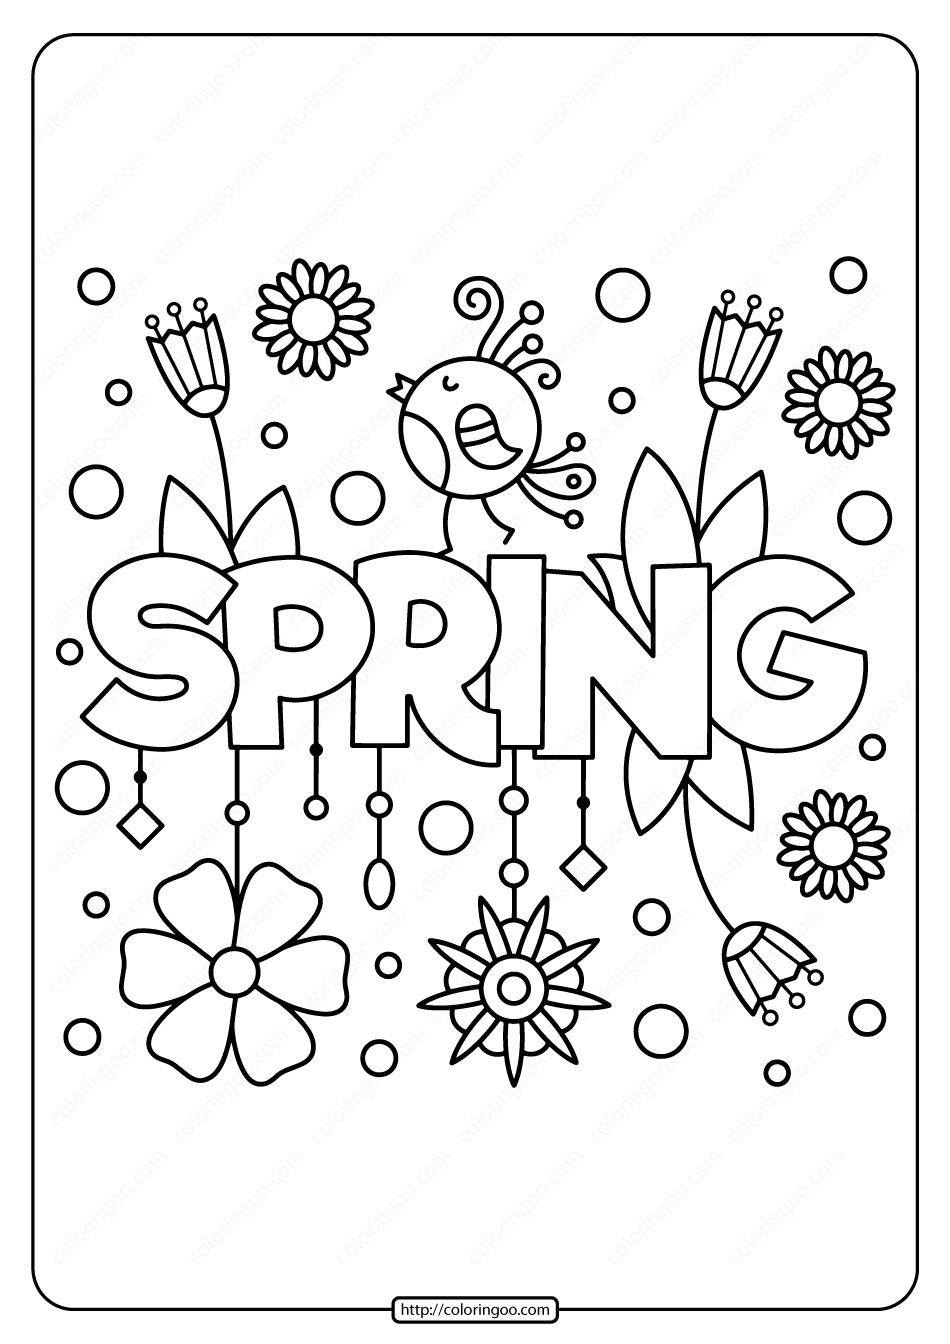 Printable Spring Pdf Coloring Page  Spring coloring sheets